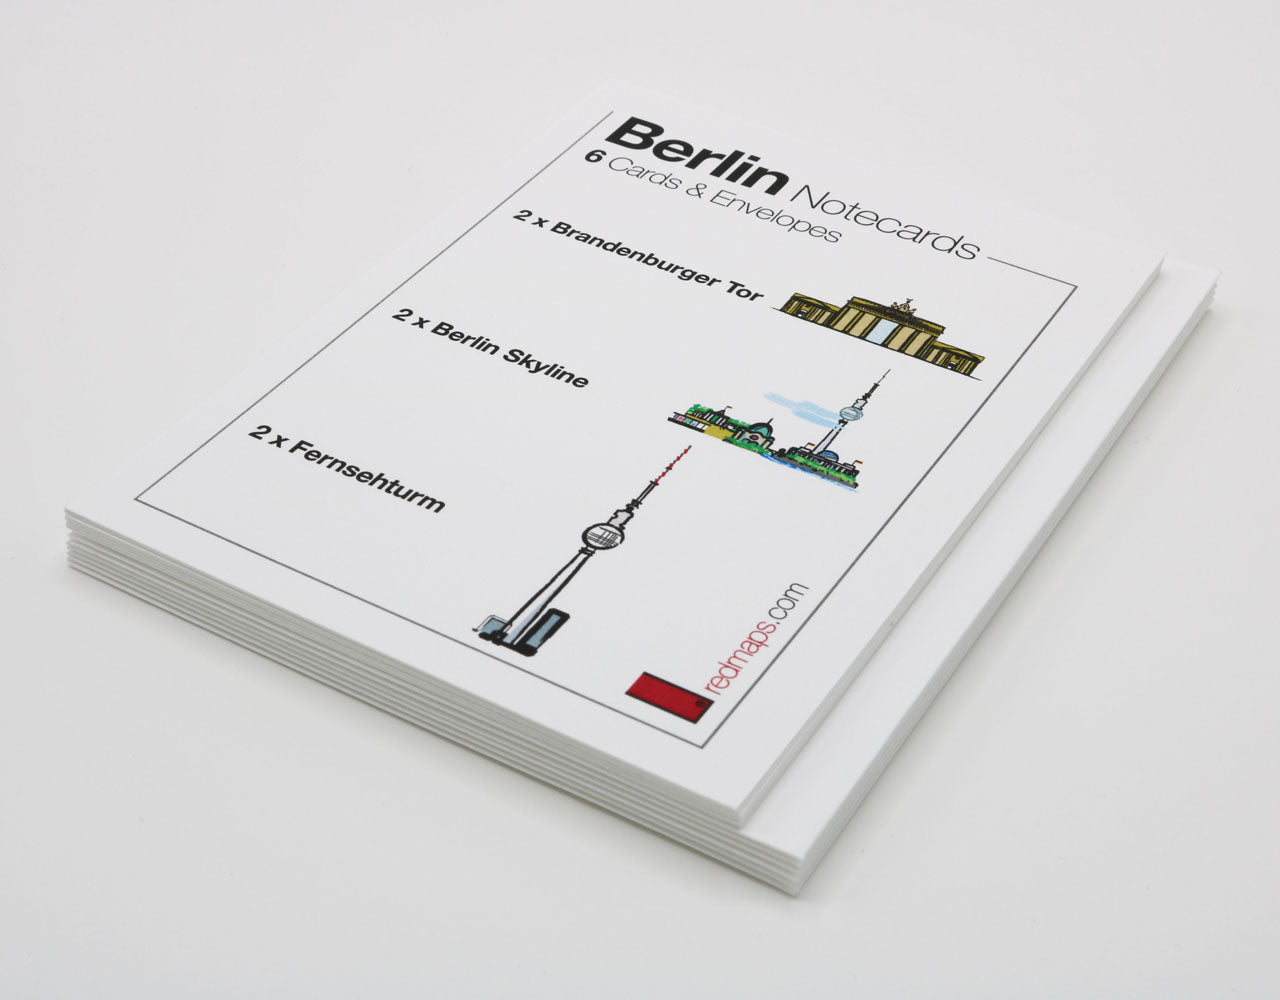 Set of Berlin themed stationery note cards